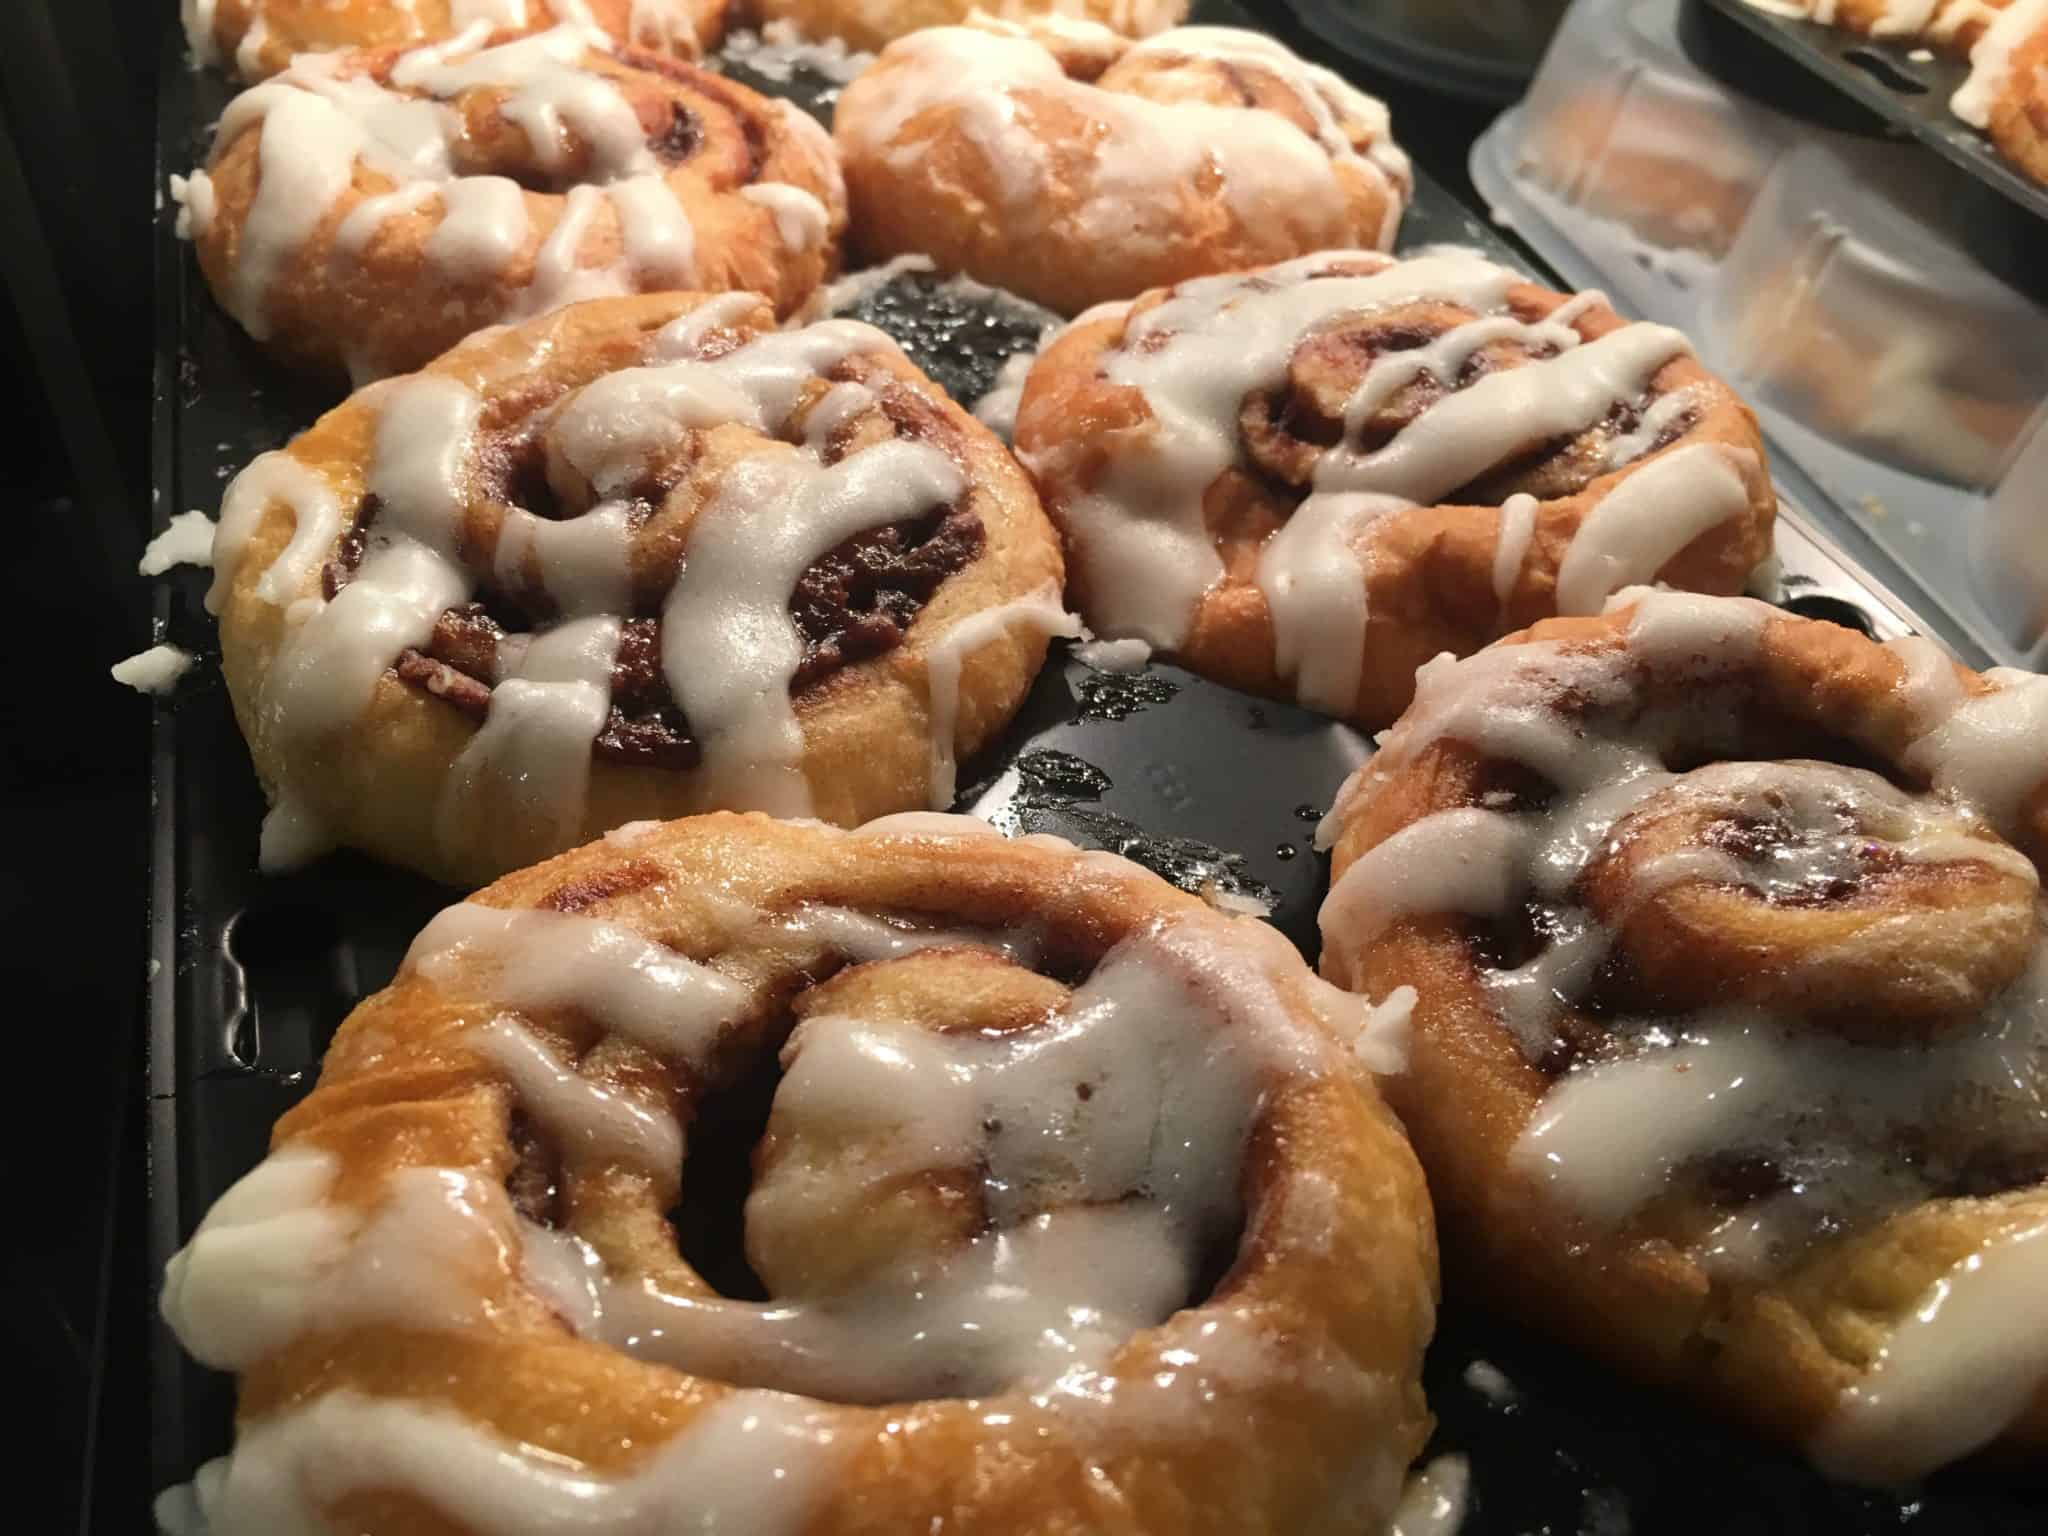 holiday inn breakfast cinnamon rolls